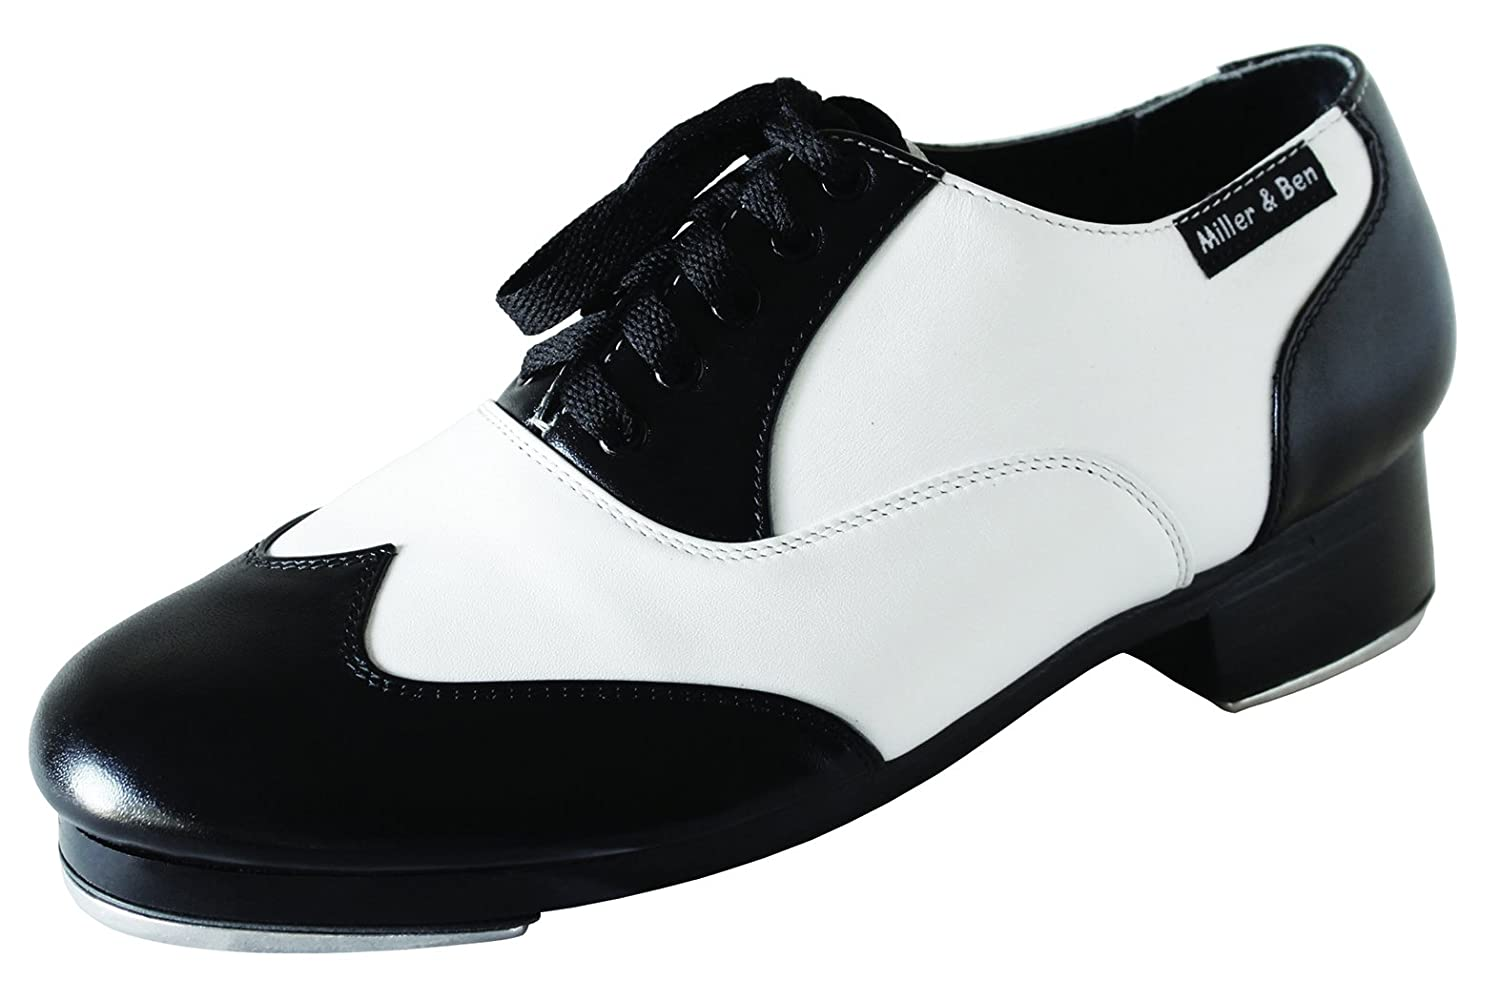 Vintage Style Shoes, Vintage Inspired Shoes Miller & Ben Tap Shoes Jazz-Tap Master Black & White - STANDARD SIZES $285.00 AT vintagedancer.com